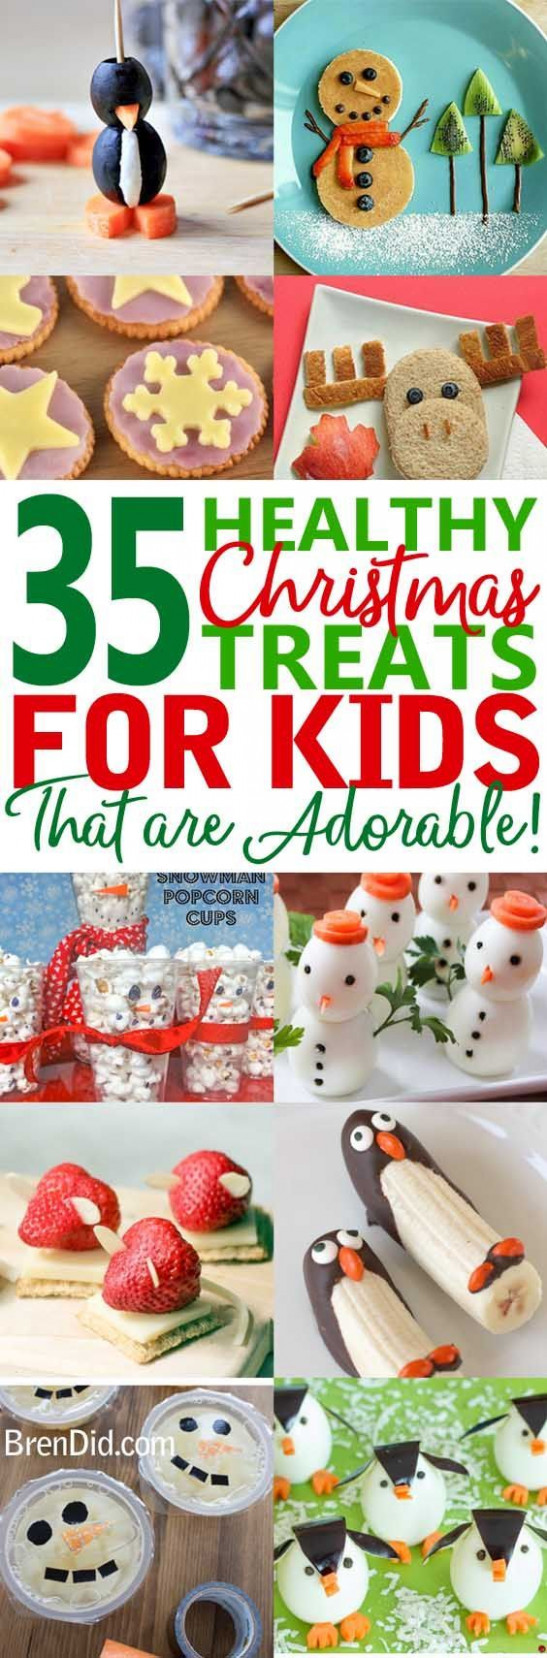 Healthy Christmas Treats for Kids | Christmas ideas ..